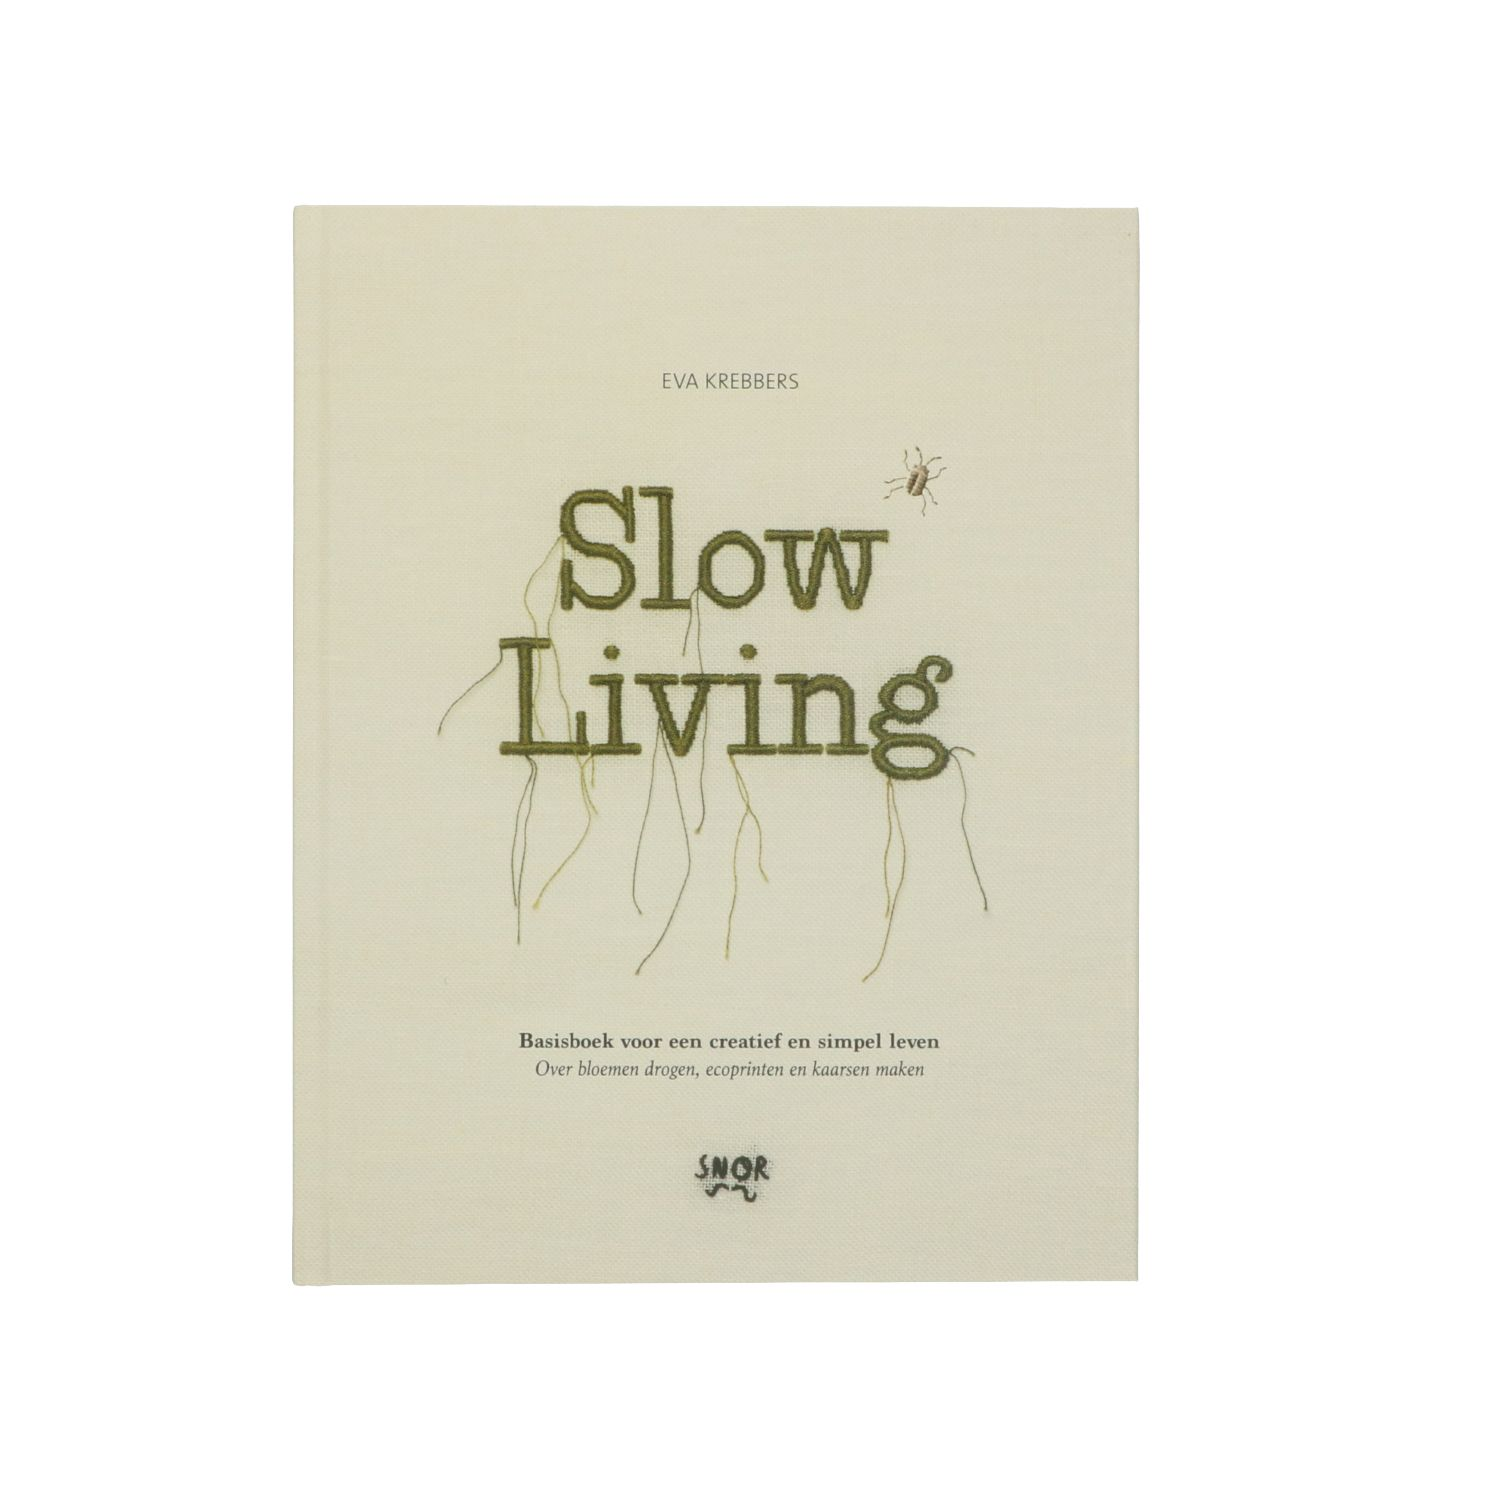 Slow living, Eva Krebbers